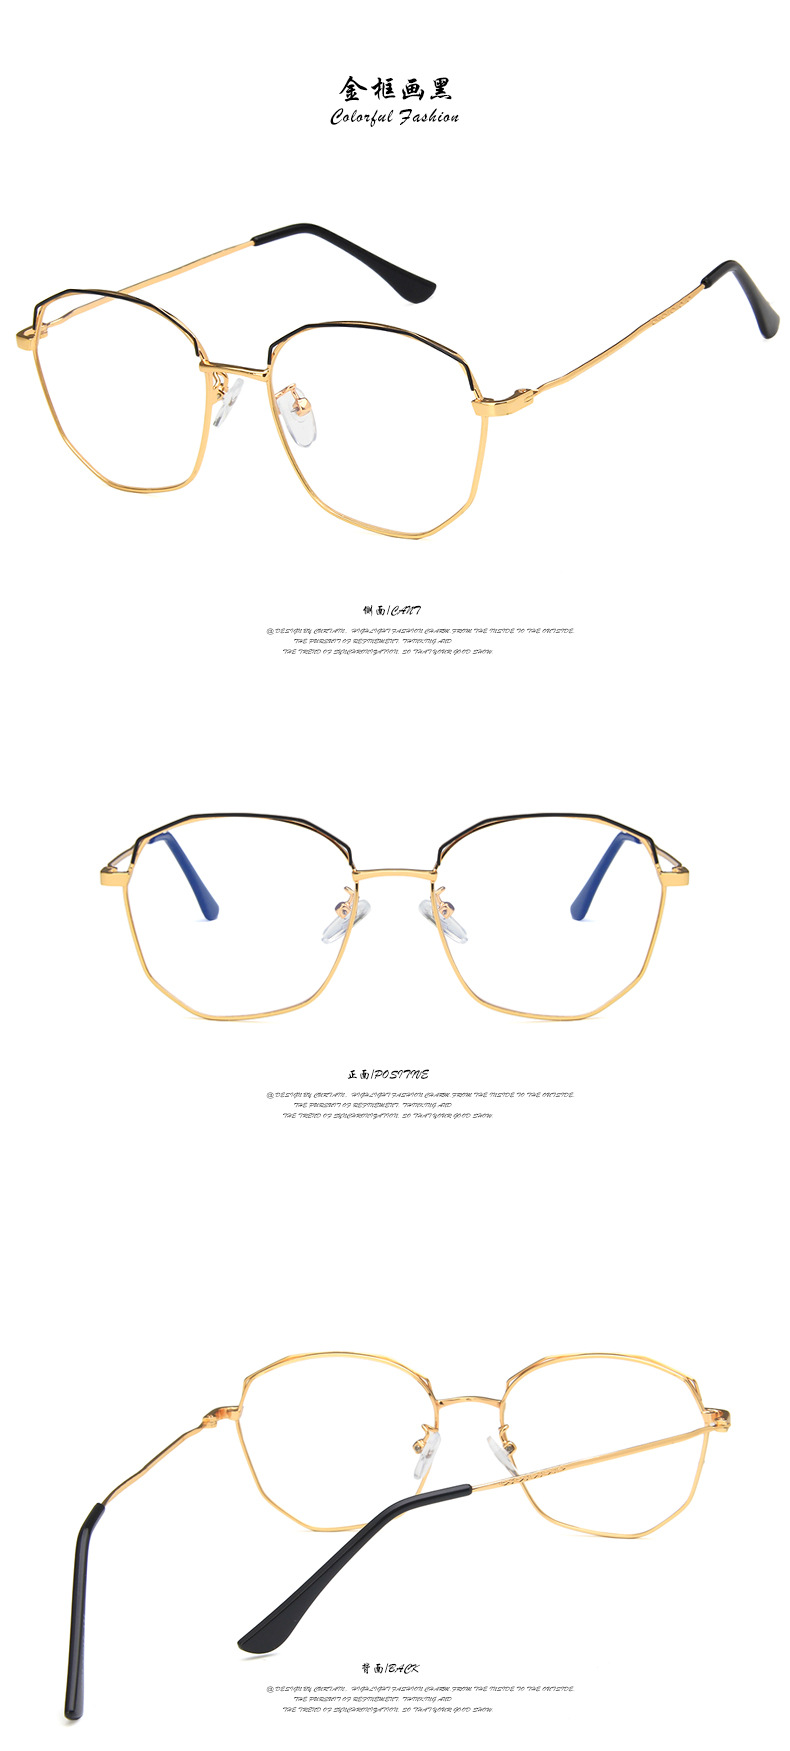 Alloy Fashion  glasses  (Alloy frame painted black)  Fashion Jewelry NHKD0658-Alloy-frame-painted-black